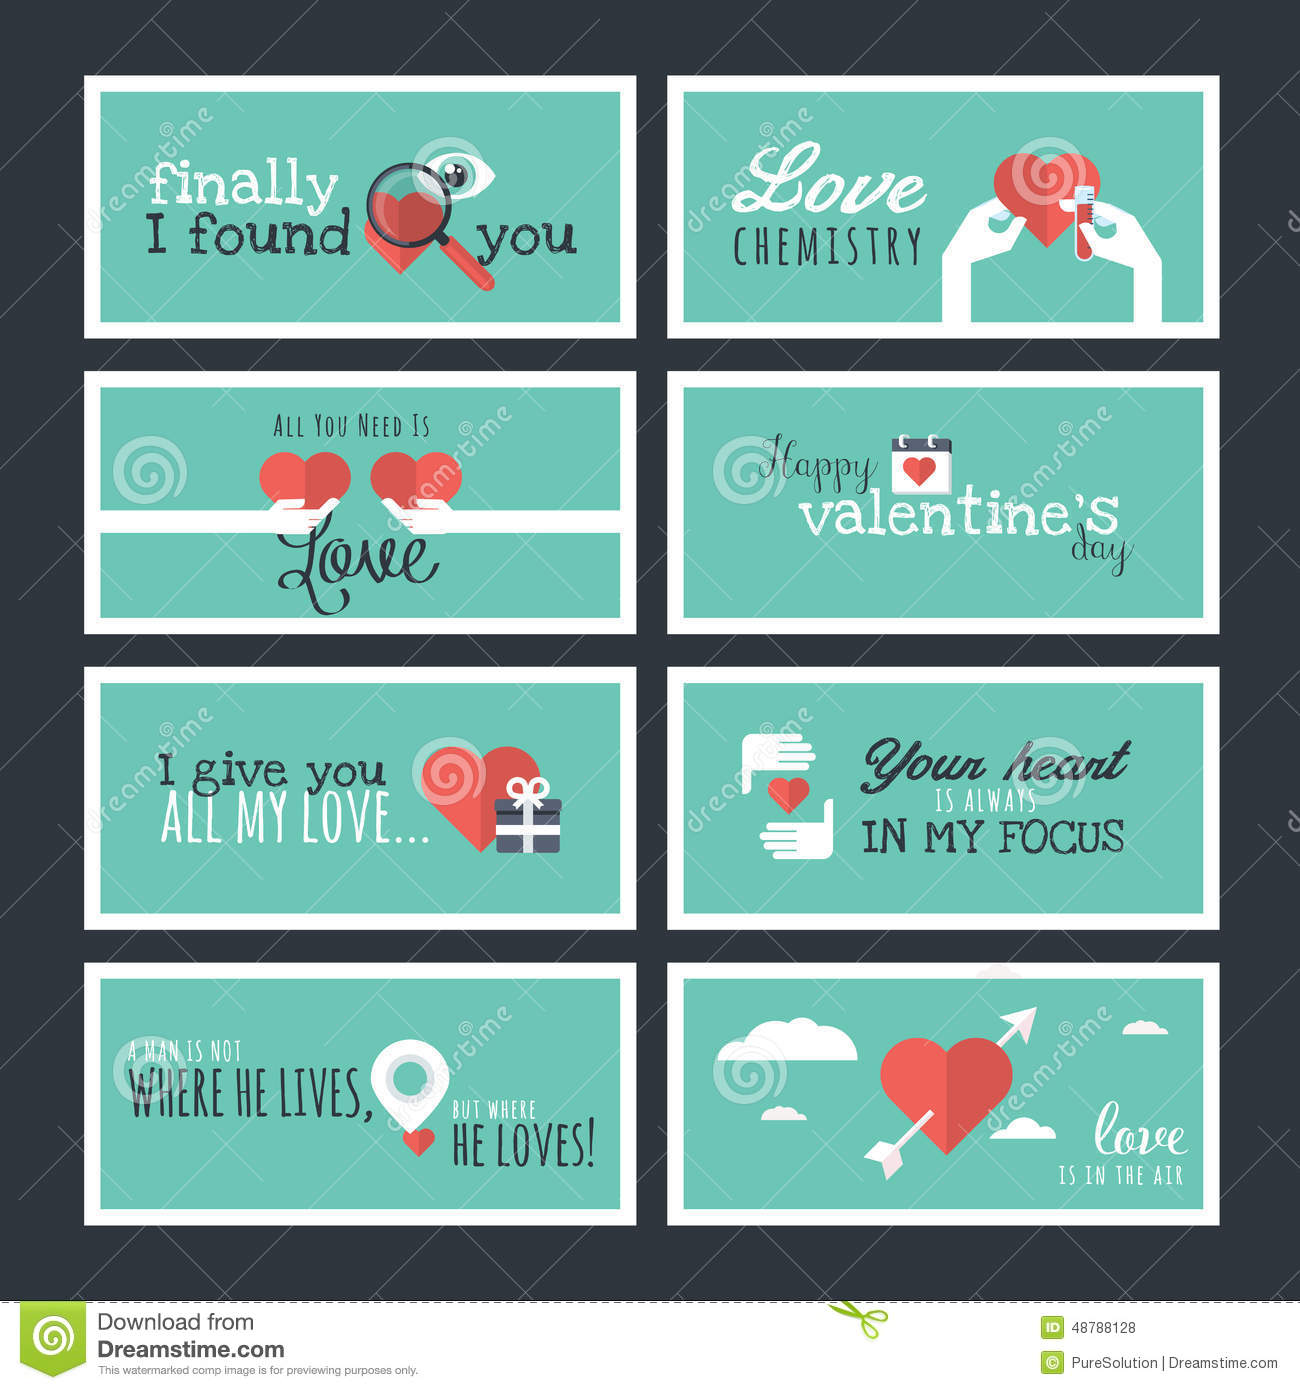 Flat design valentines day greeting cards and banners stock vector flat design valentines day greeting cards and banners m4hsunfo Image collections